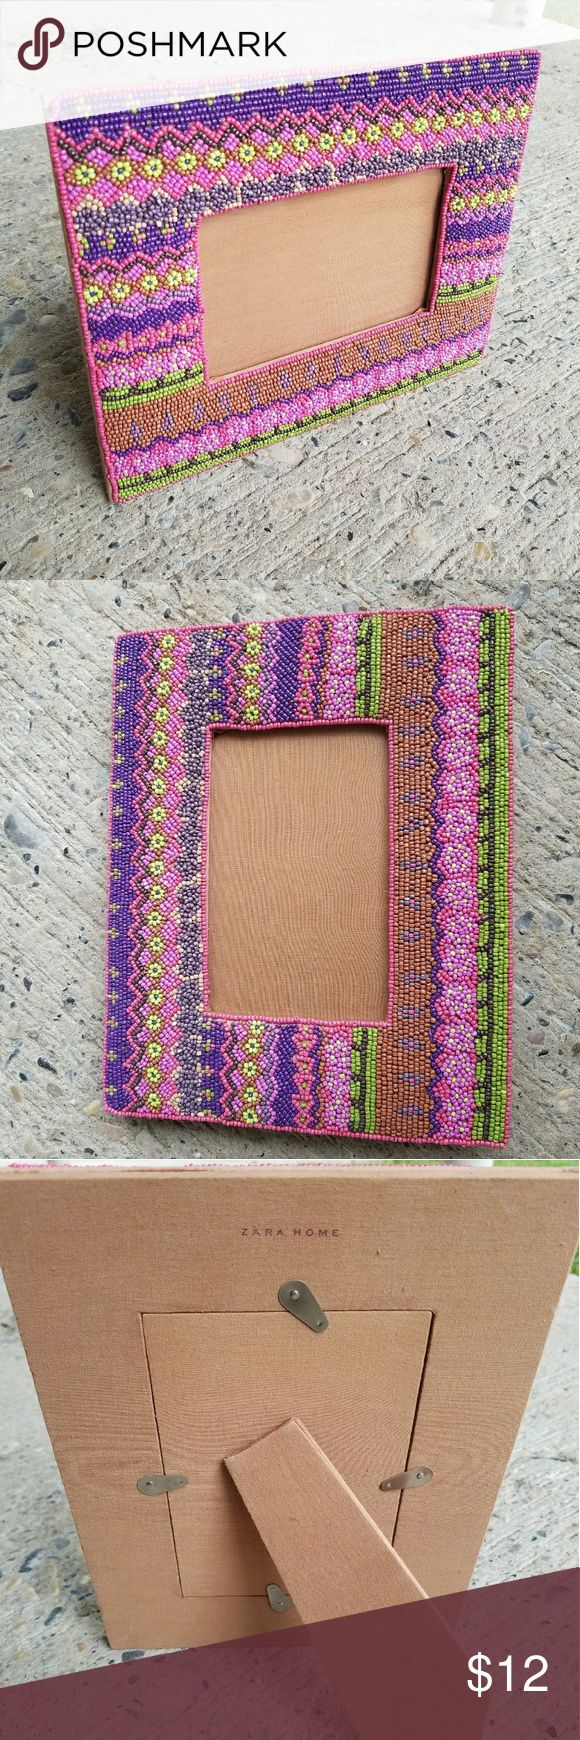 Zara Home picture frame ZARA HOME color beaded picture frame. Great condition. Zara Other